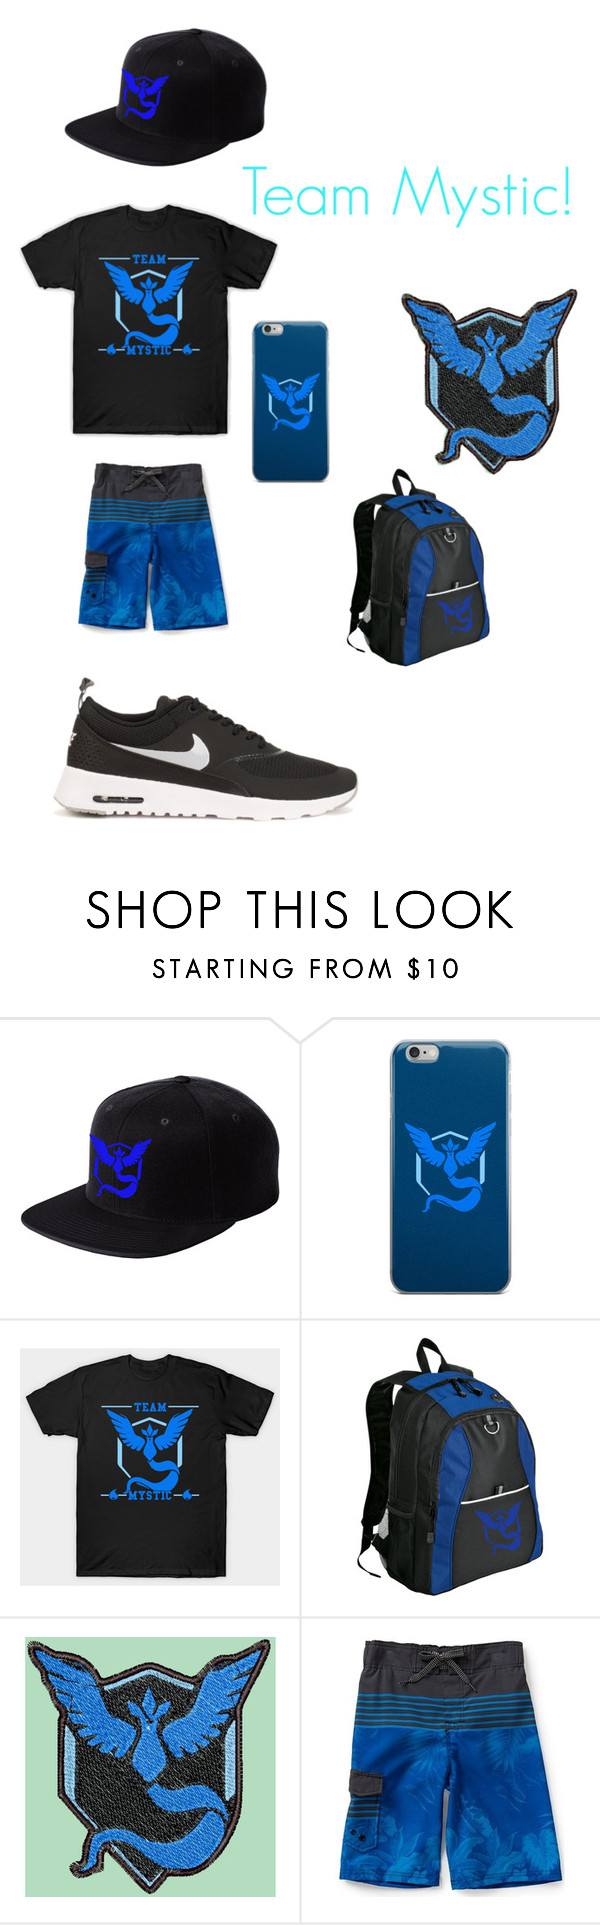 """""""Team Mystic!"""" by oreo-galaxy ❤ liked on Polyvore featuring interior, interiors, interior design, home, home decor, interior decorating, Valor and NIKE"""